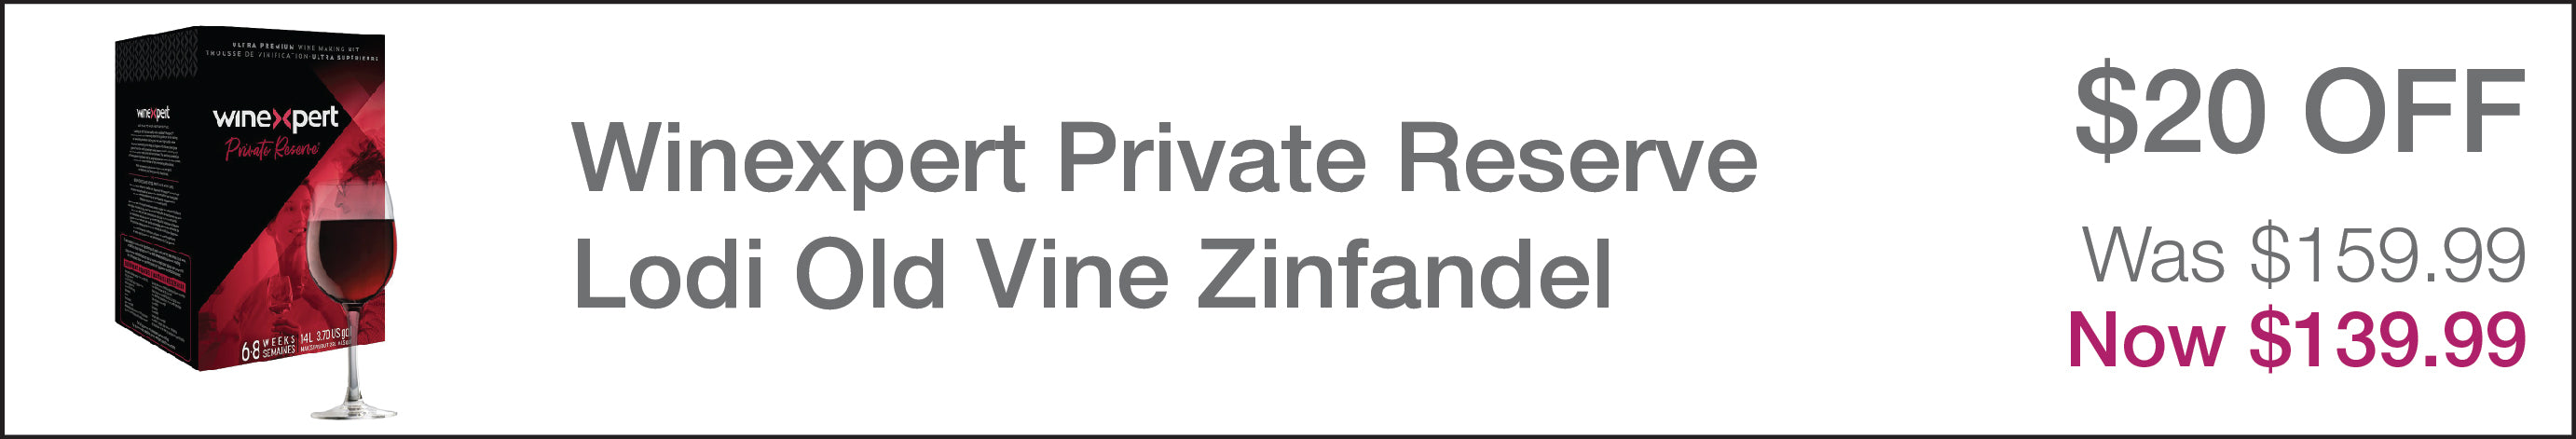 Winexpert Private Reserve Lodi Old Vine Zinfandel